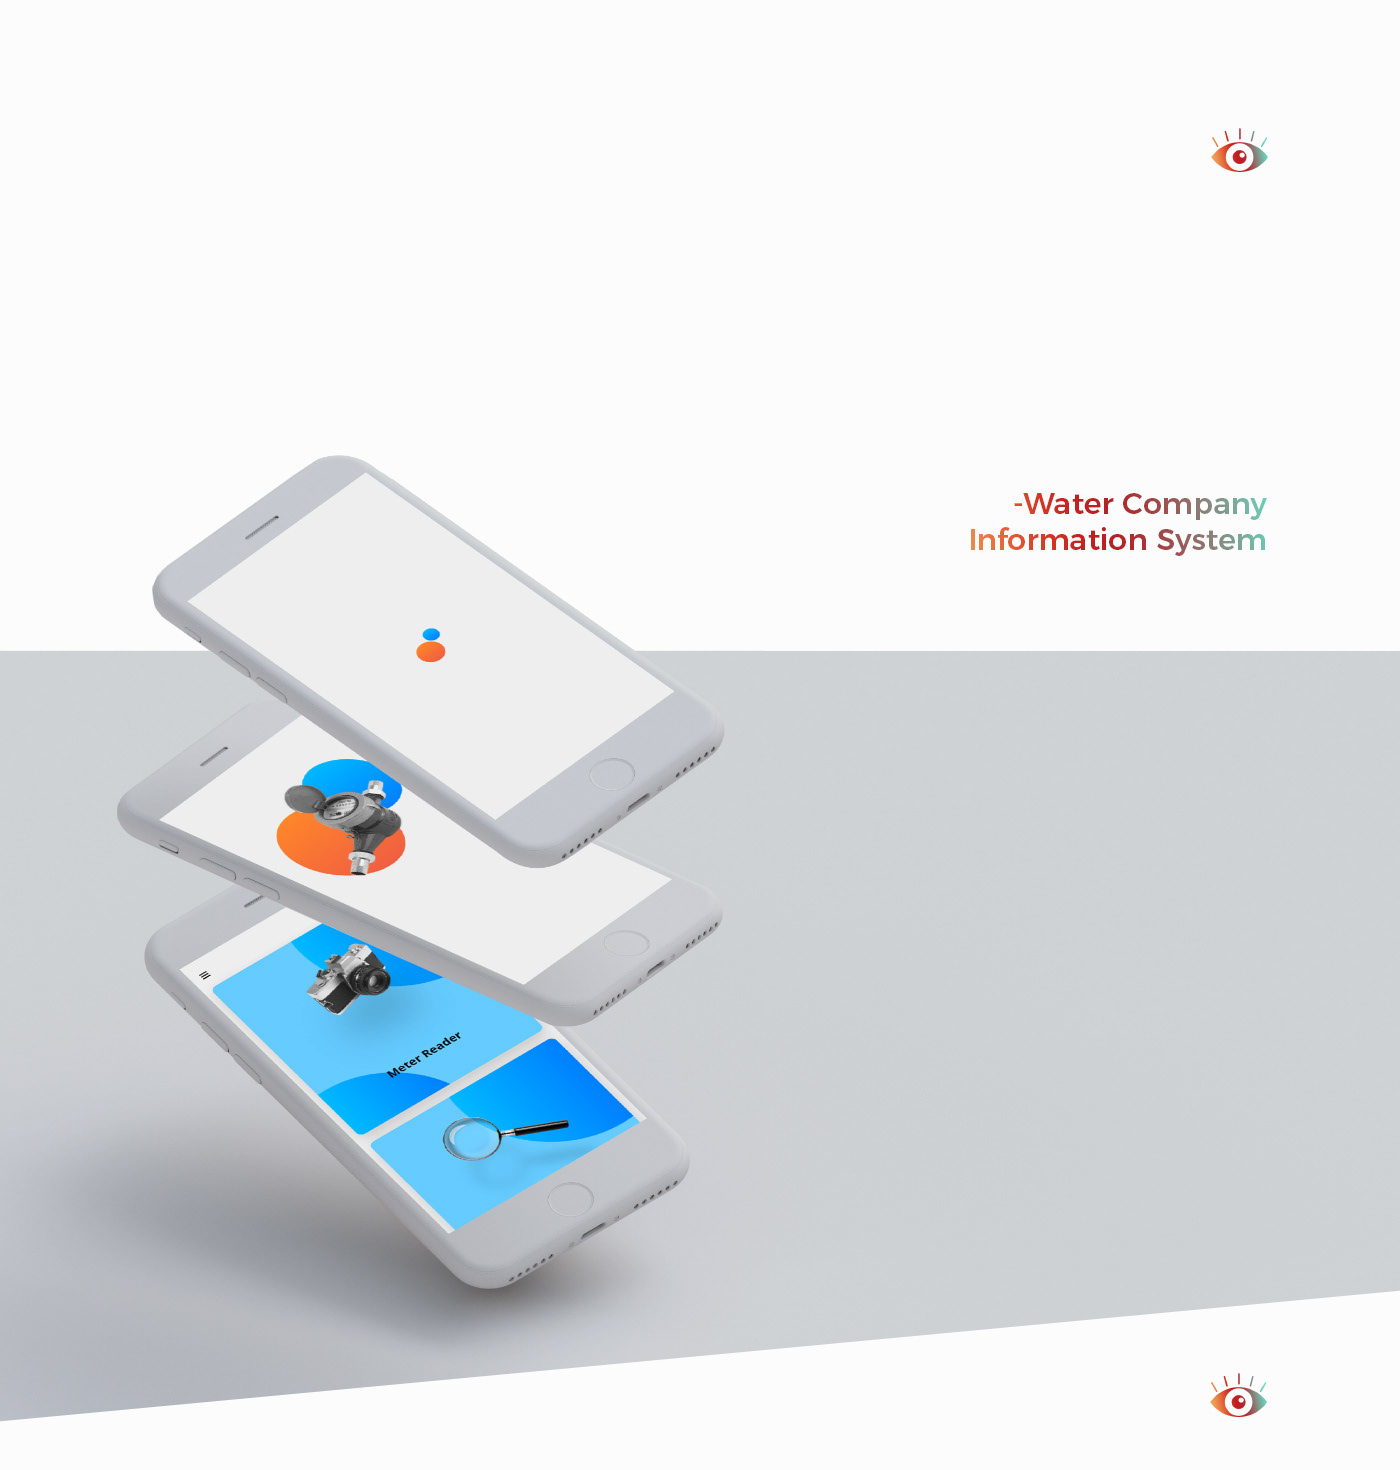 company Good objective Practice system UI uiux ux water Website